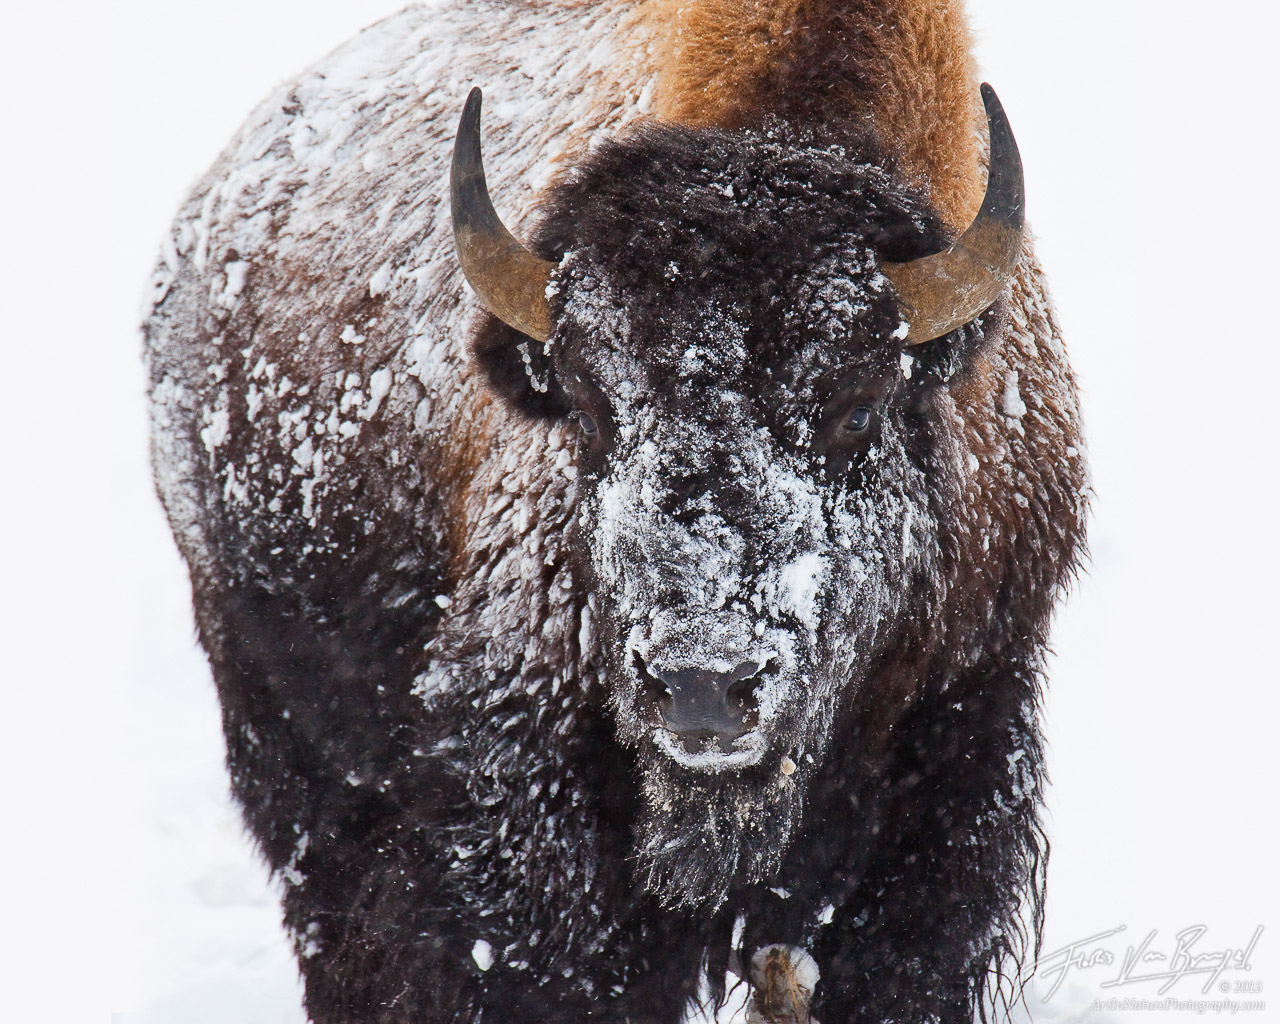 Snow Covered Bison, Yellowstone National Park, Wyoming, snowman, winter, bison, photo